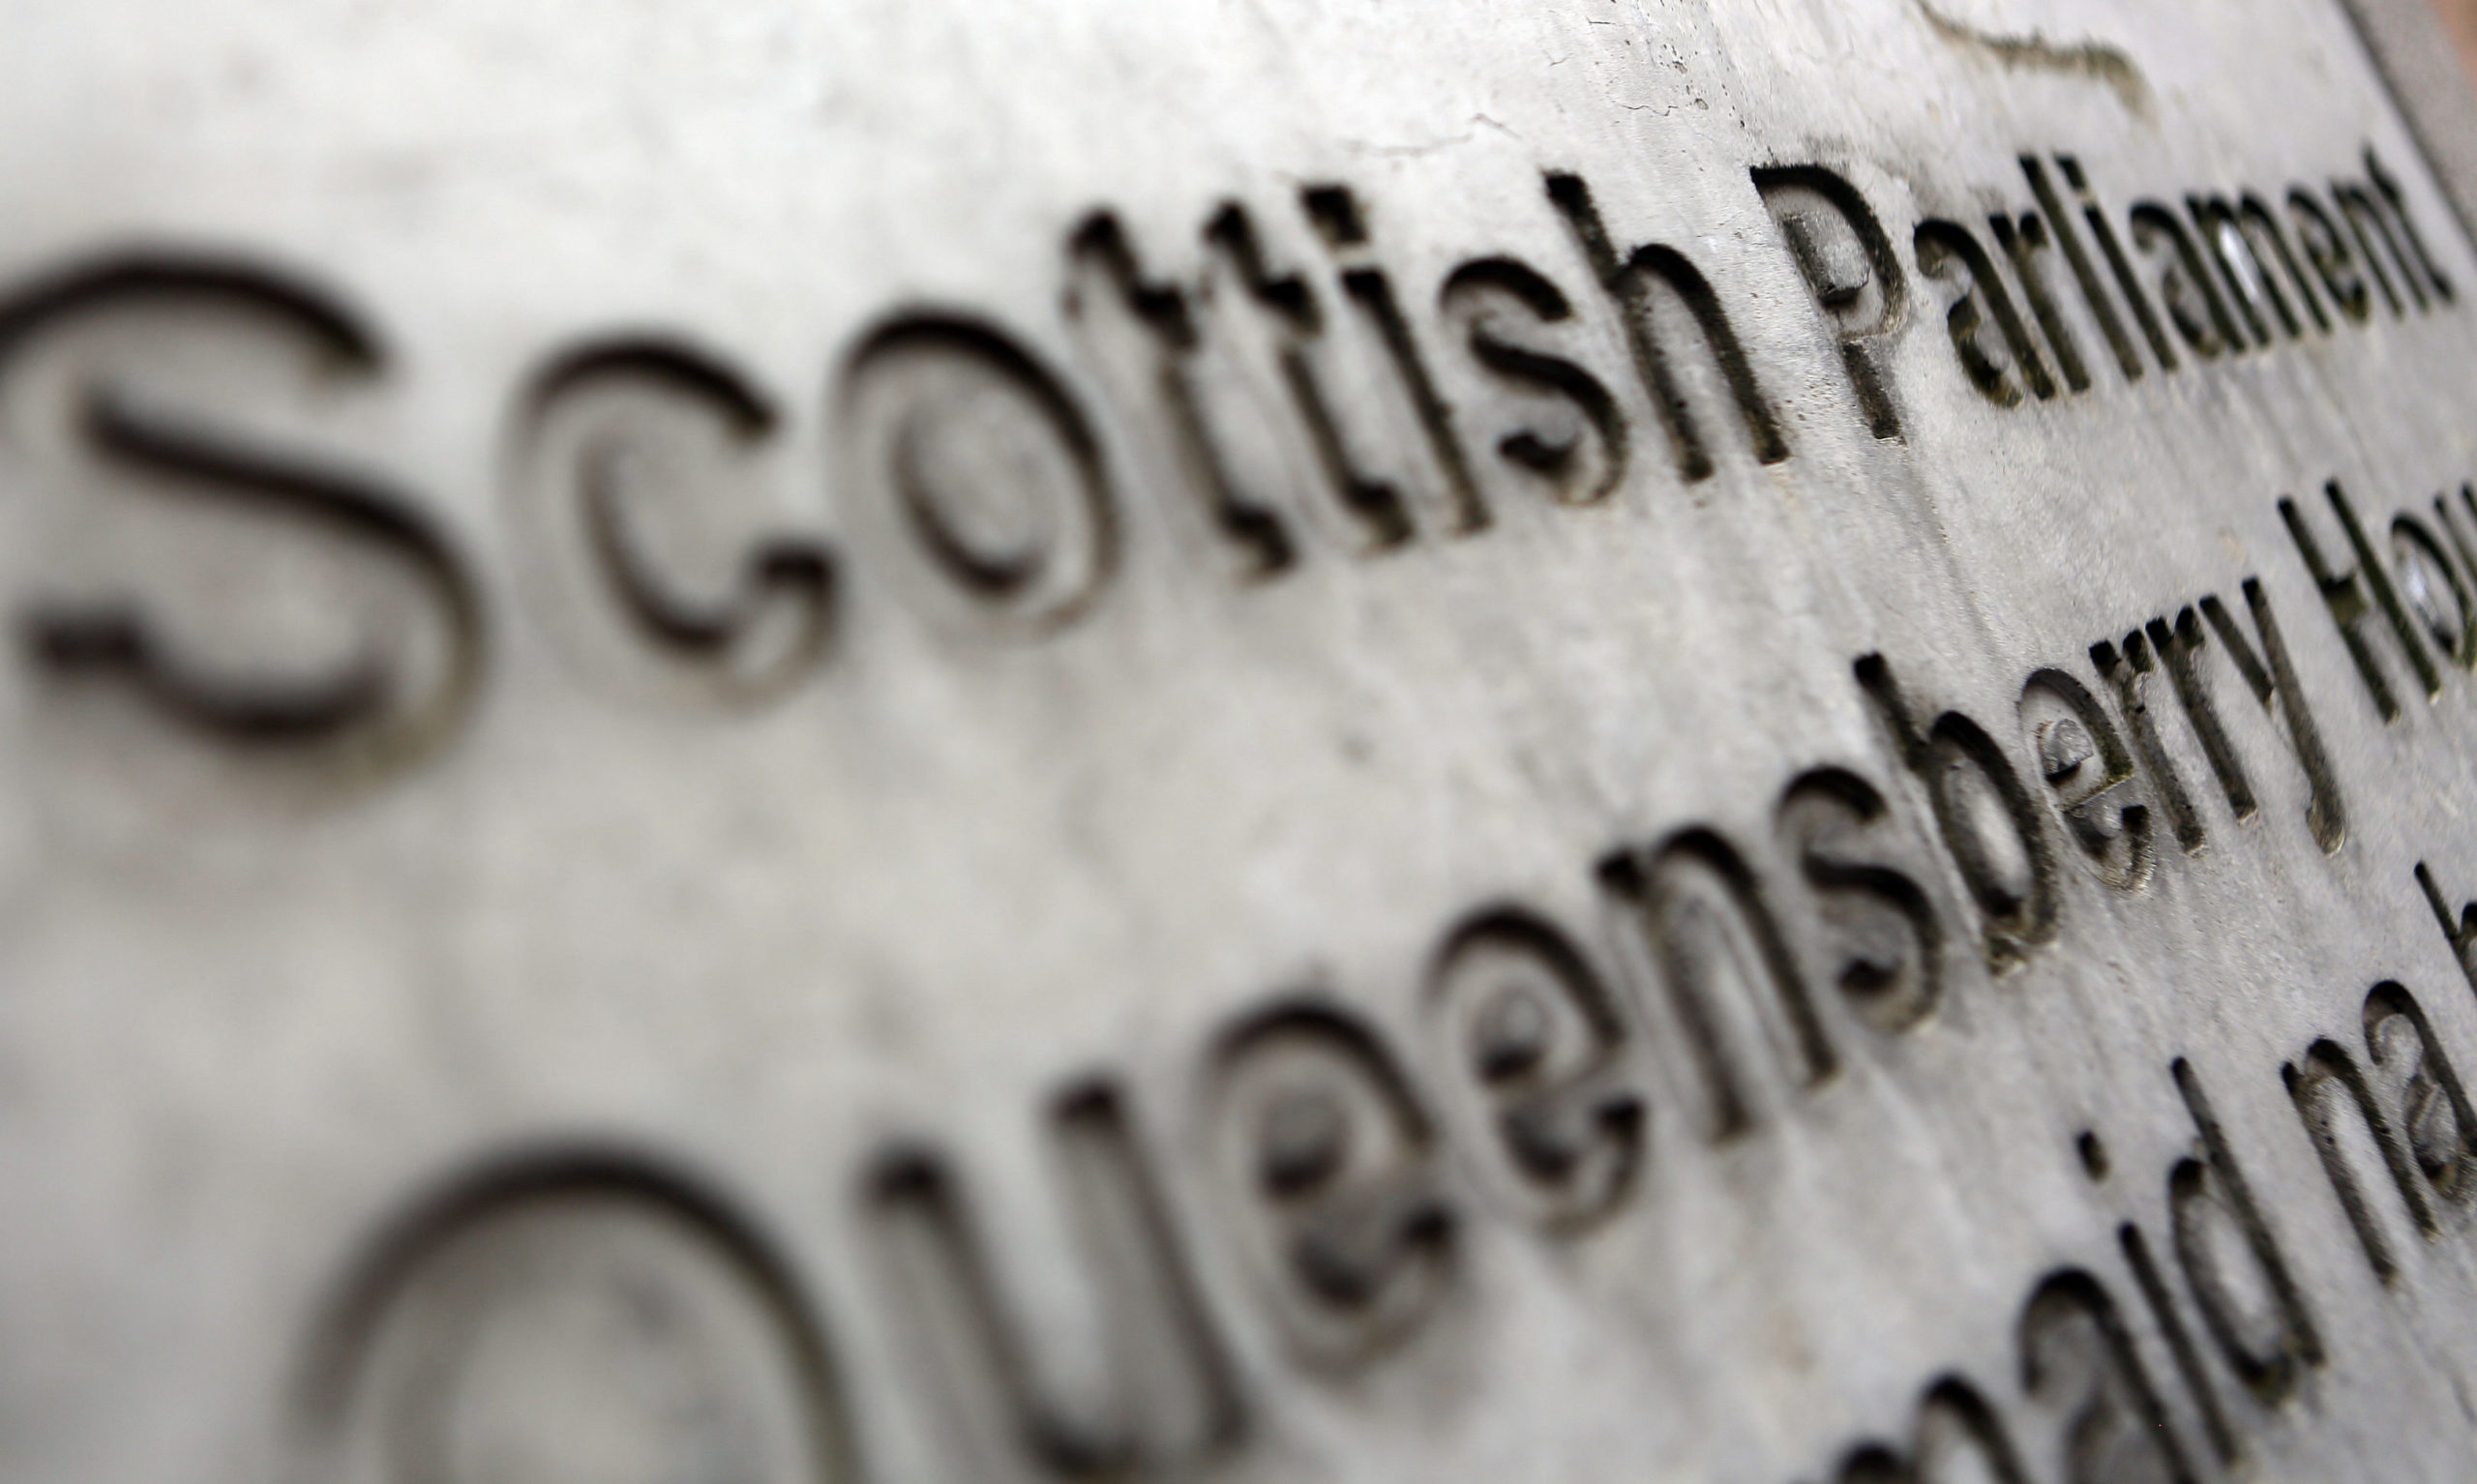 The Hate Crime Bill was introduced to the Scottish Parliament in April.